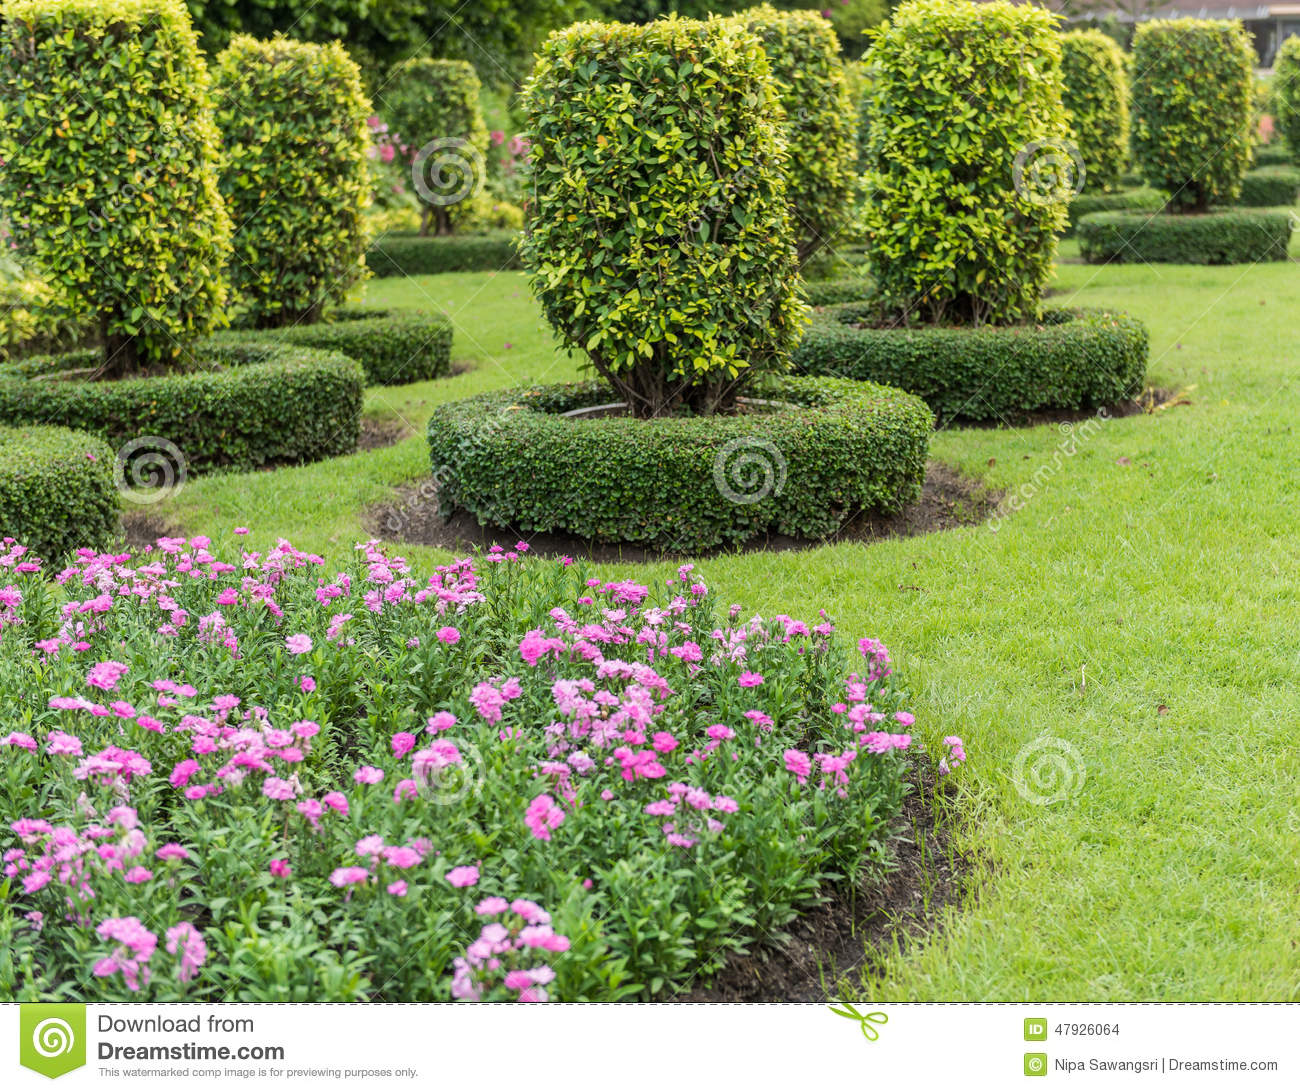 Gardening and landscaping with decorative trees stock photo image 47926064 - Decorative small trees for landscaping ...